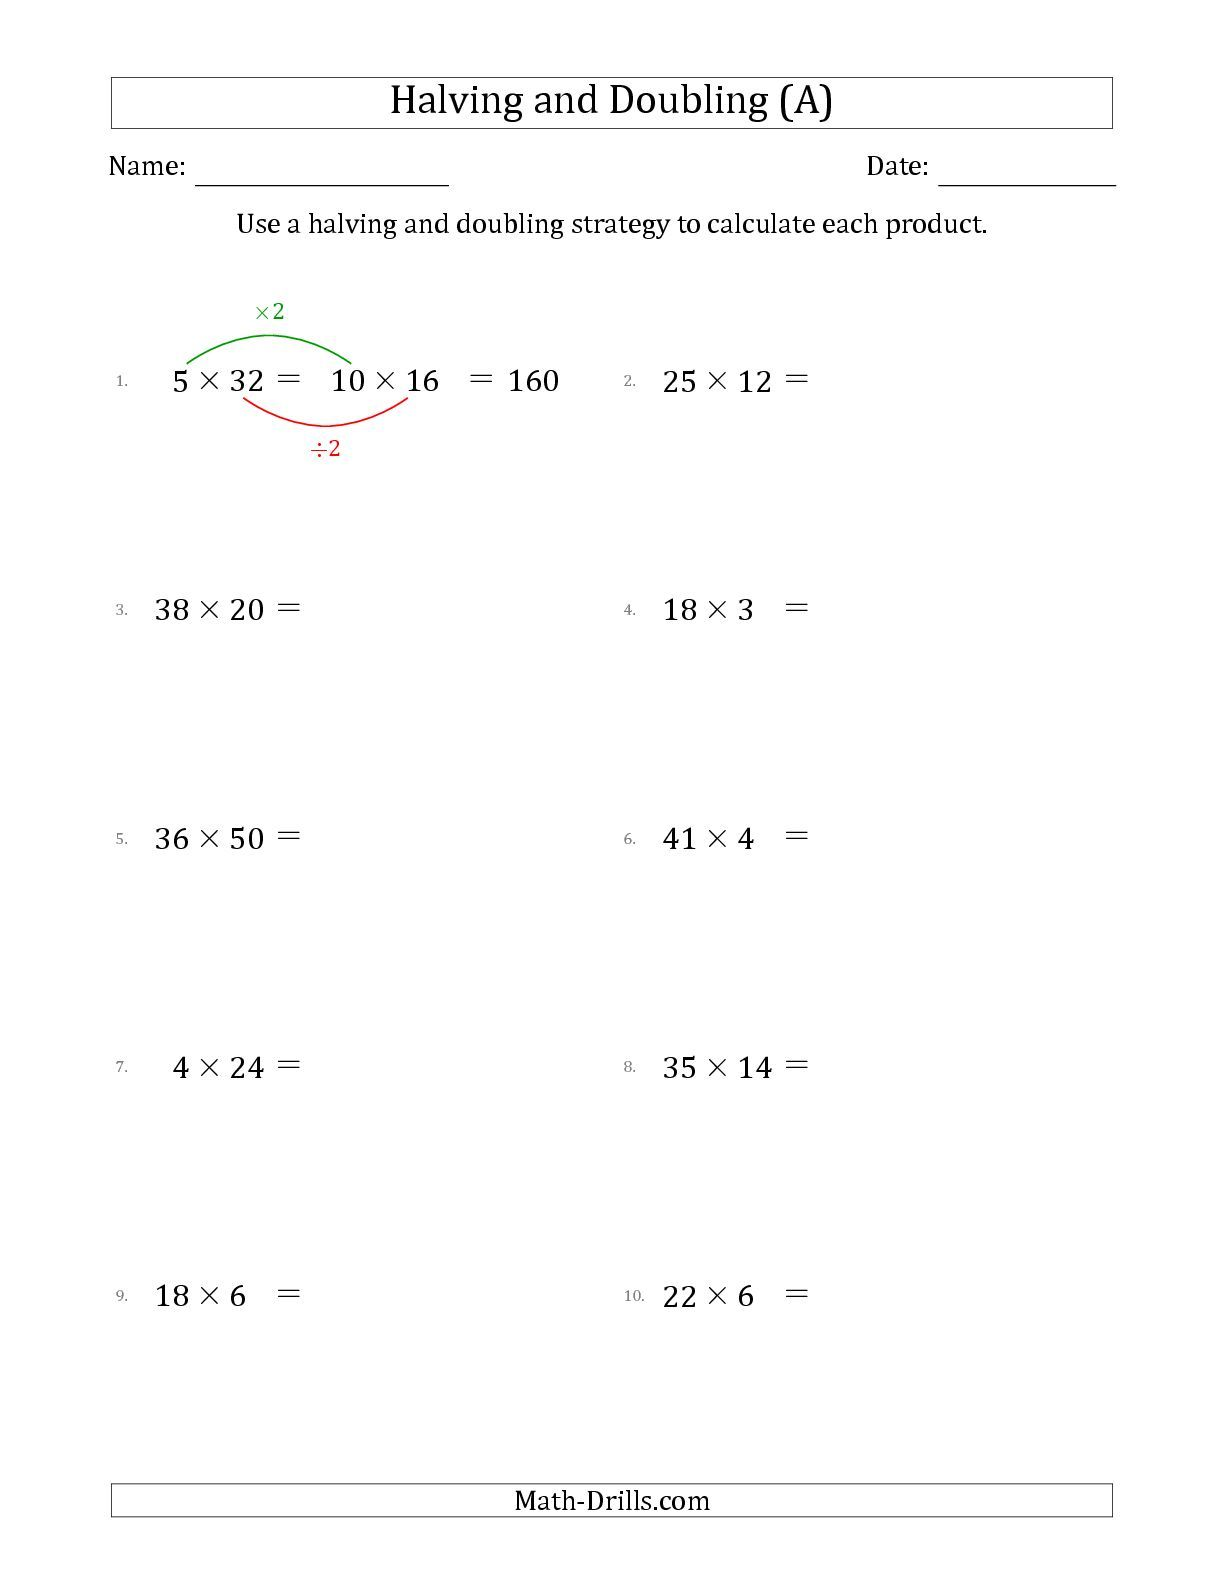 The Halving And Doubling Strategy With Harder Questions A Multiplication Facts Worksheets Multiplication Multiplication Facts [ 1584 x 1224 Pixel ]